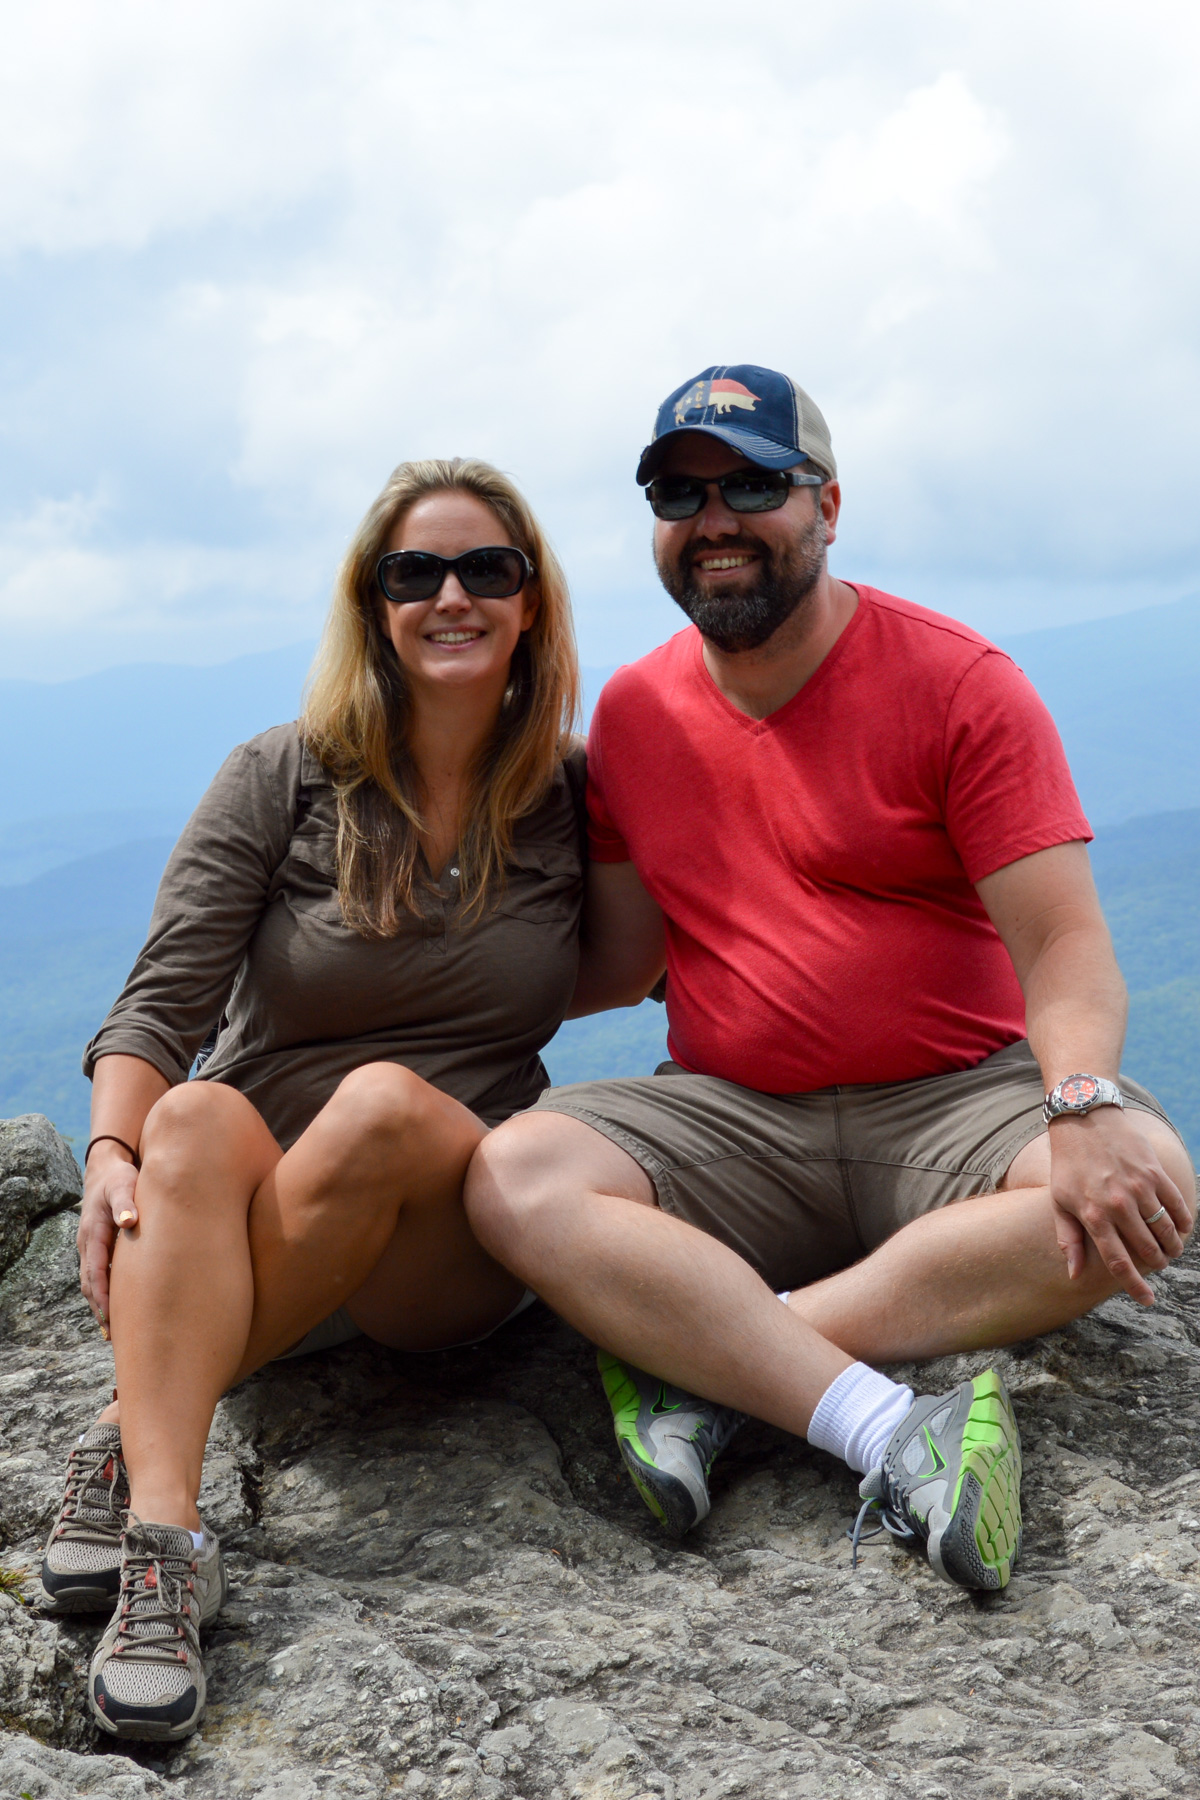 Couples Getaway to Blowing Rock, North Carolina. Blowing Rock has everything you need for a perfect couples weekend away - great restaurants, beautiful scenery, romantic cabins and hotels, and plenty of activities to participate in together.